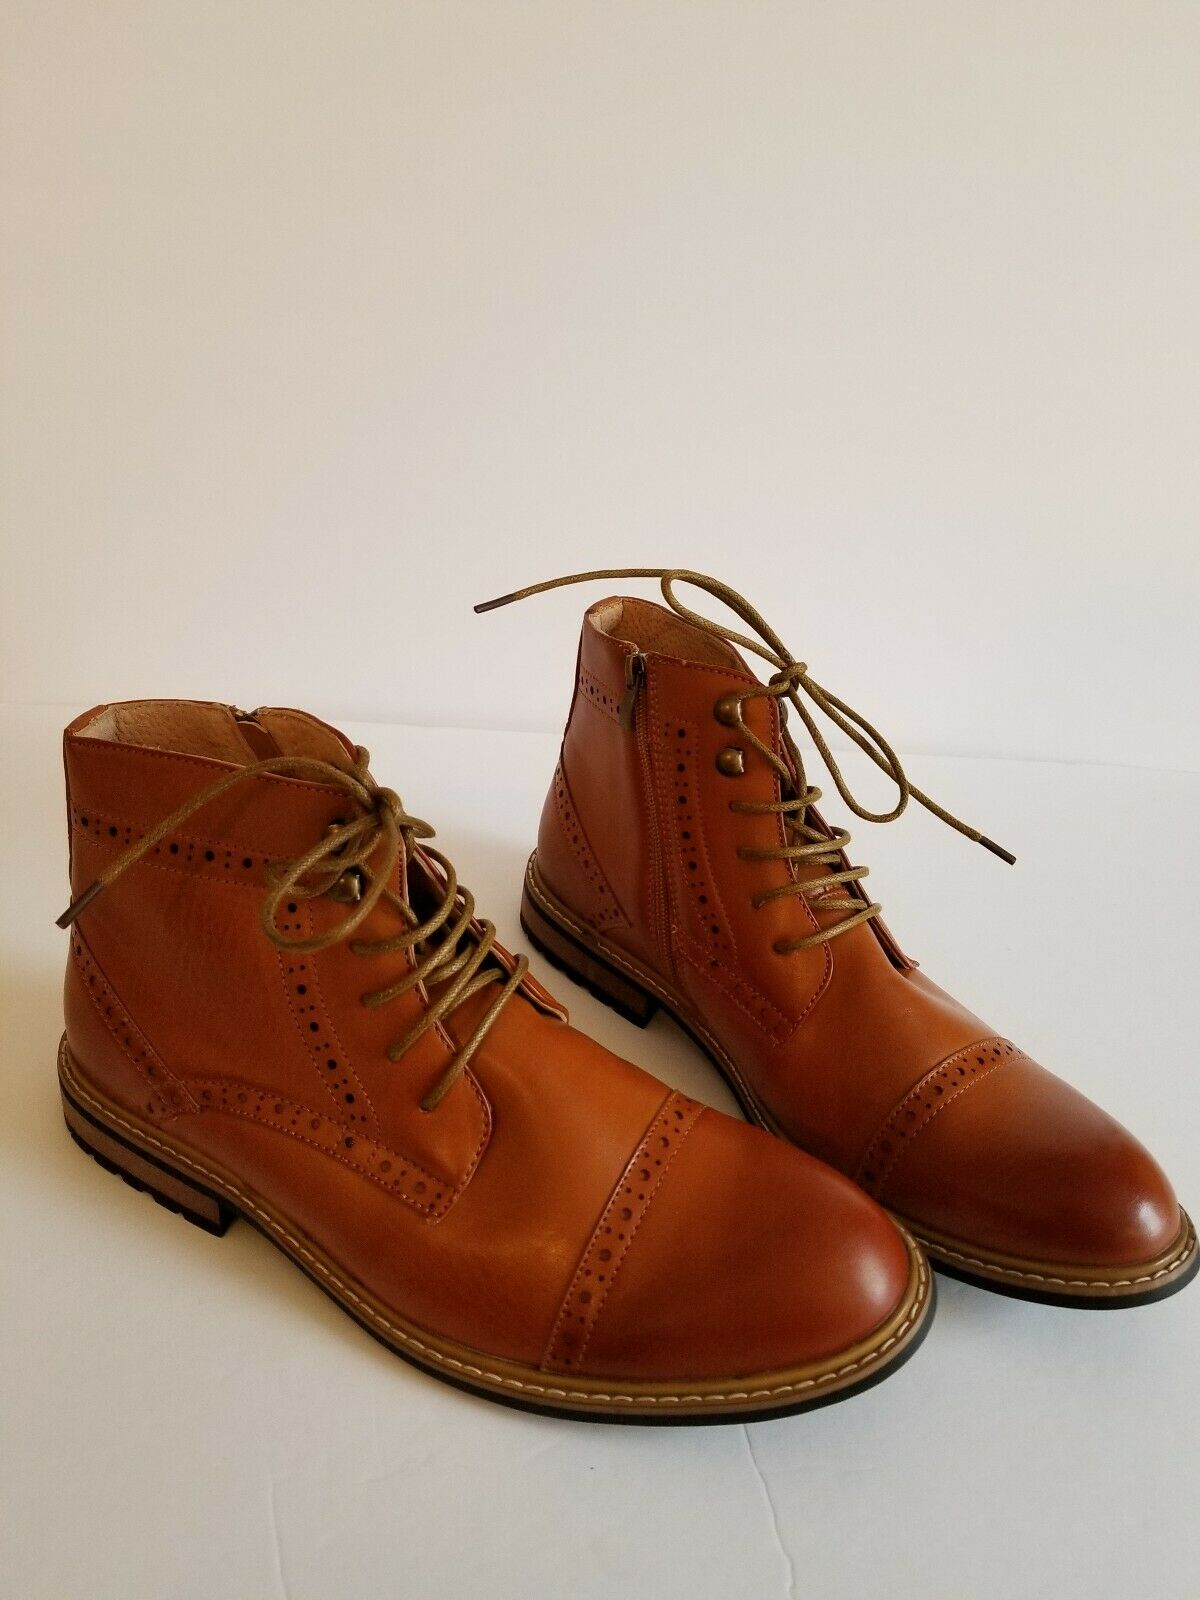 MENS NEW BRUNO MARC NEW YORK BERGEN-03 CHUKKA ANKLE BOOTS SIZE 9.5 CAMEL COLOR